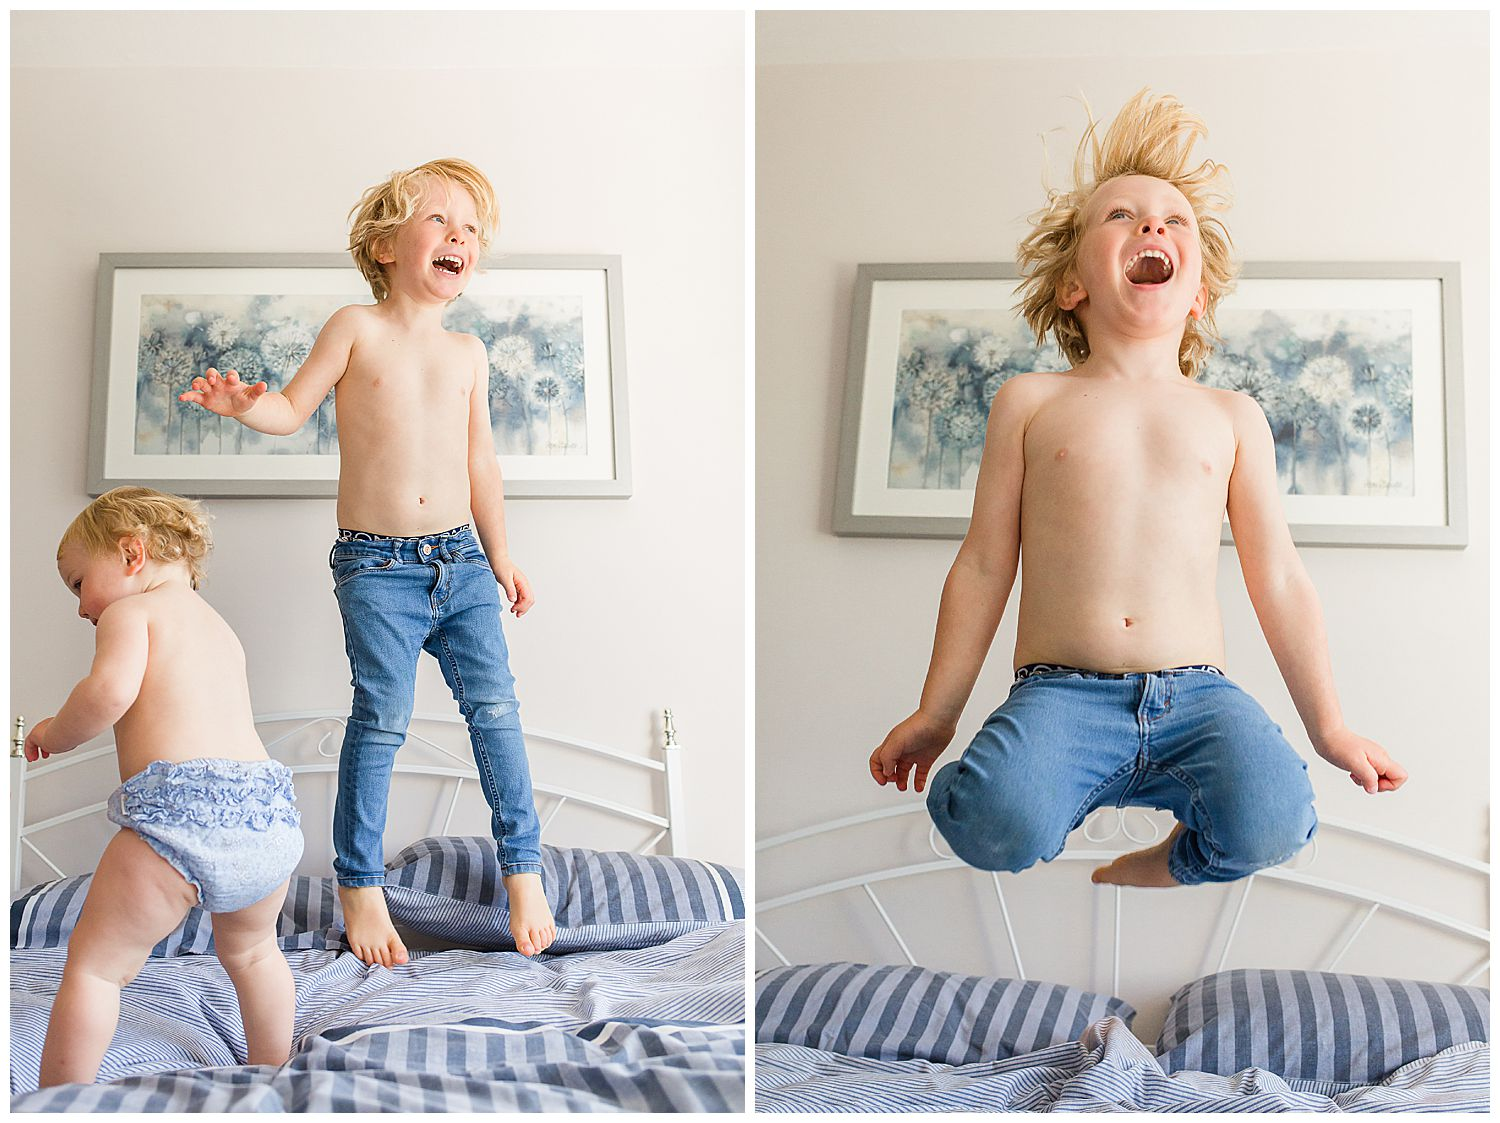 baby & brother jumping on bed